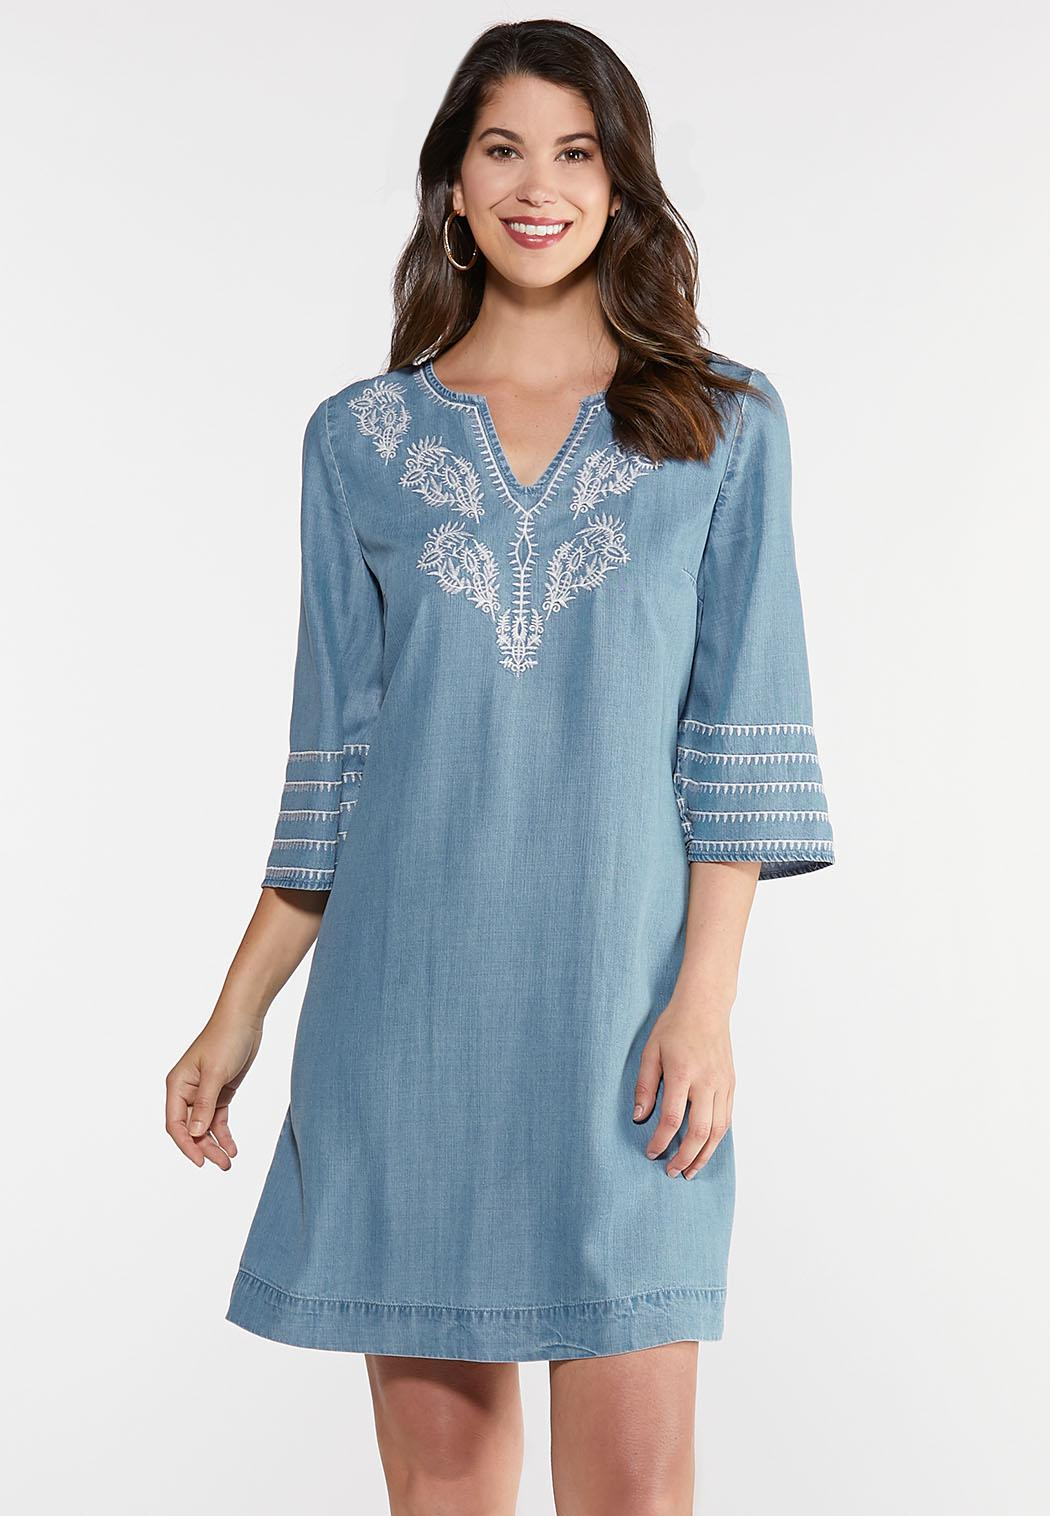 d86f0429c034 Women's Dresses- Fit and Flare, Swing, Maxi, Midi & More Affordable Dresses